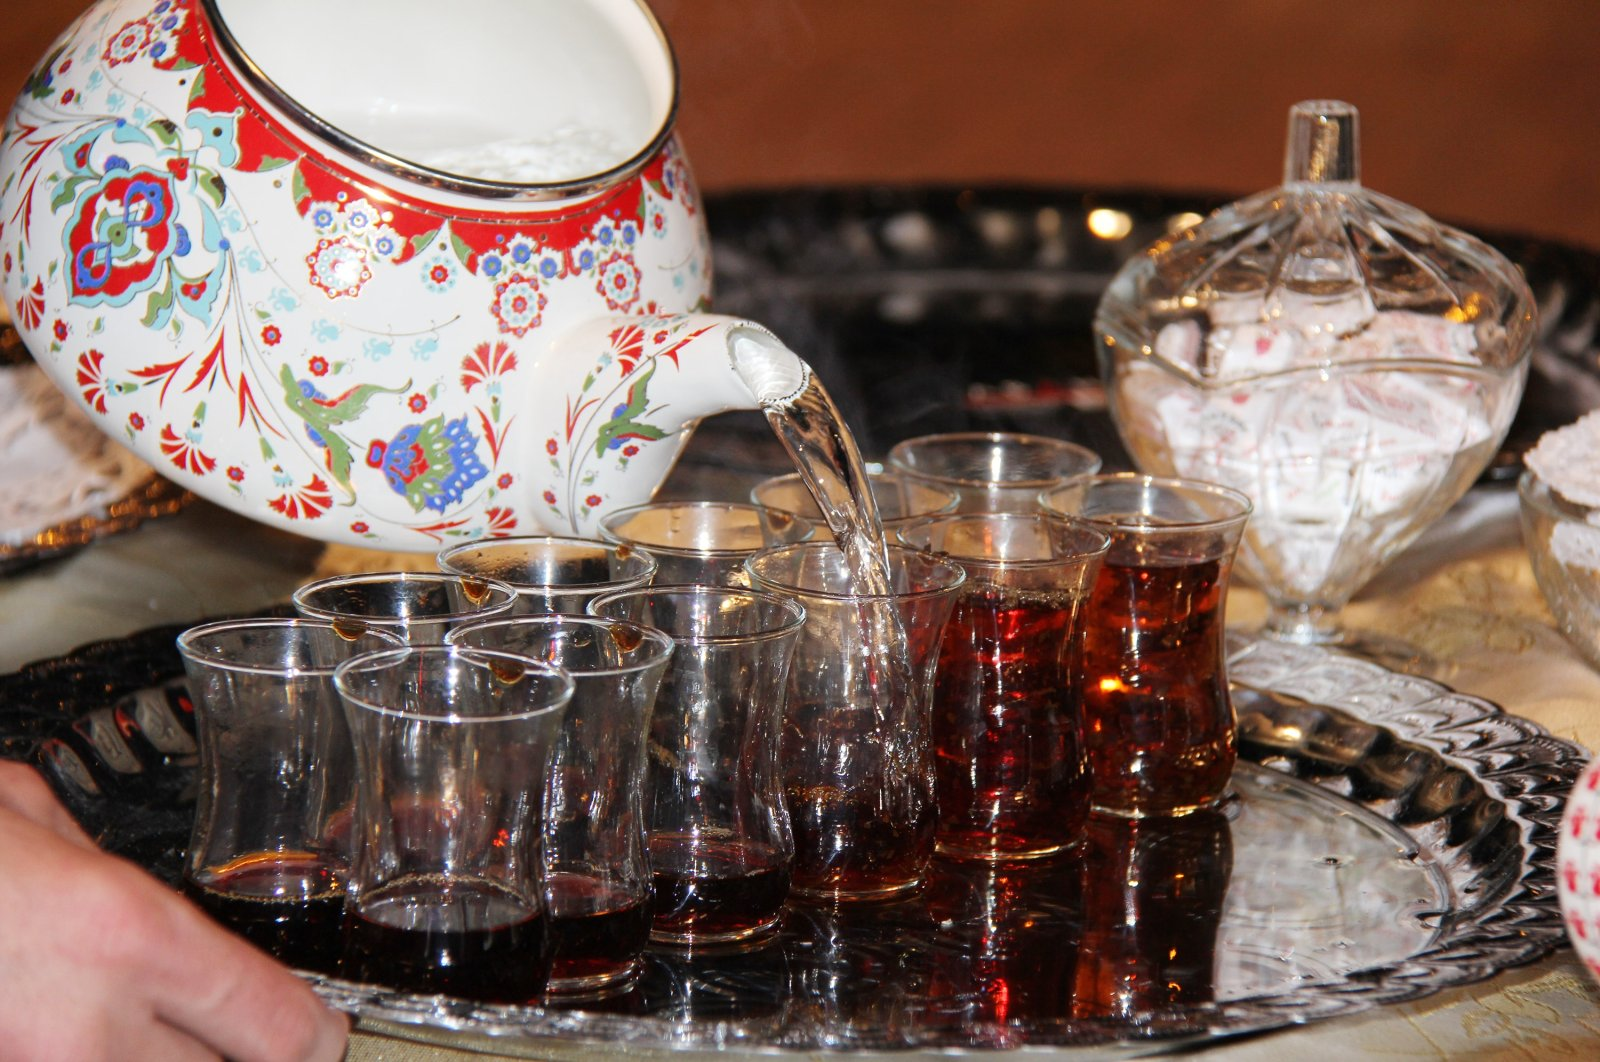 A Turkish person is said to consume an average of 1,300 cups of tea every year. (DHA Photo)